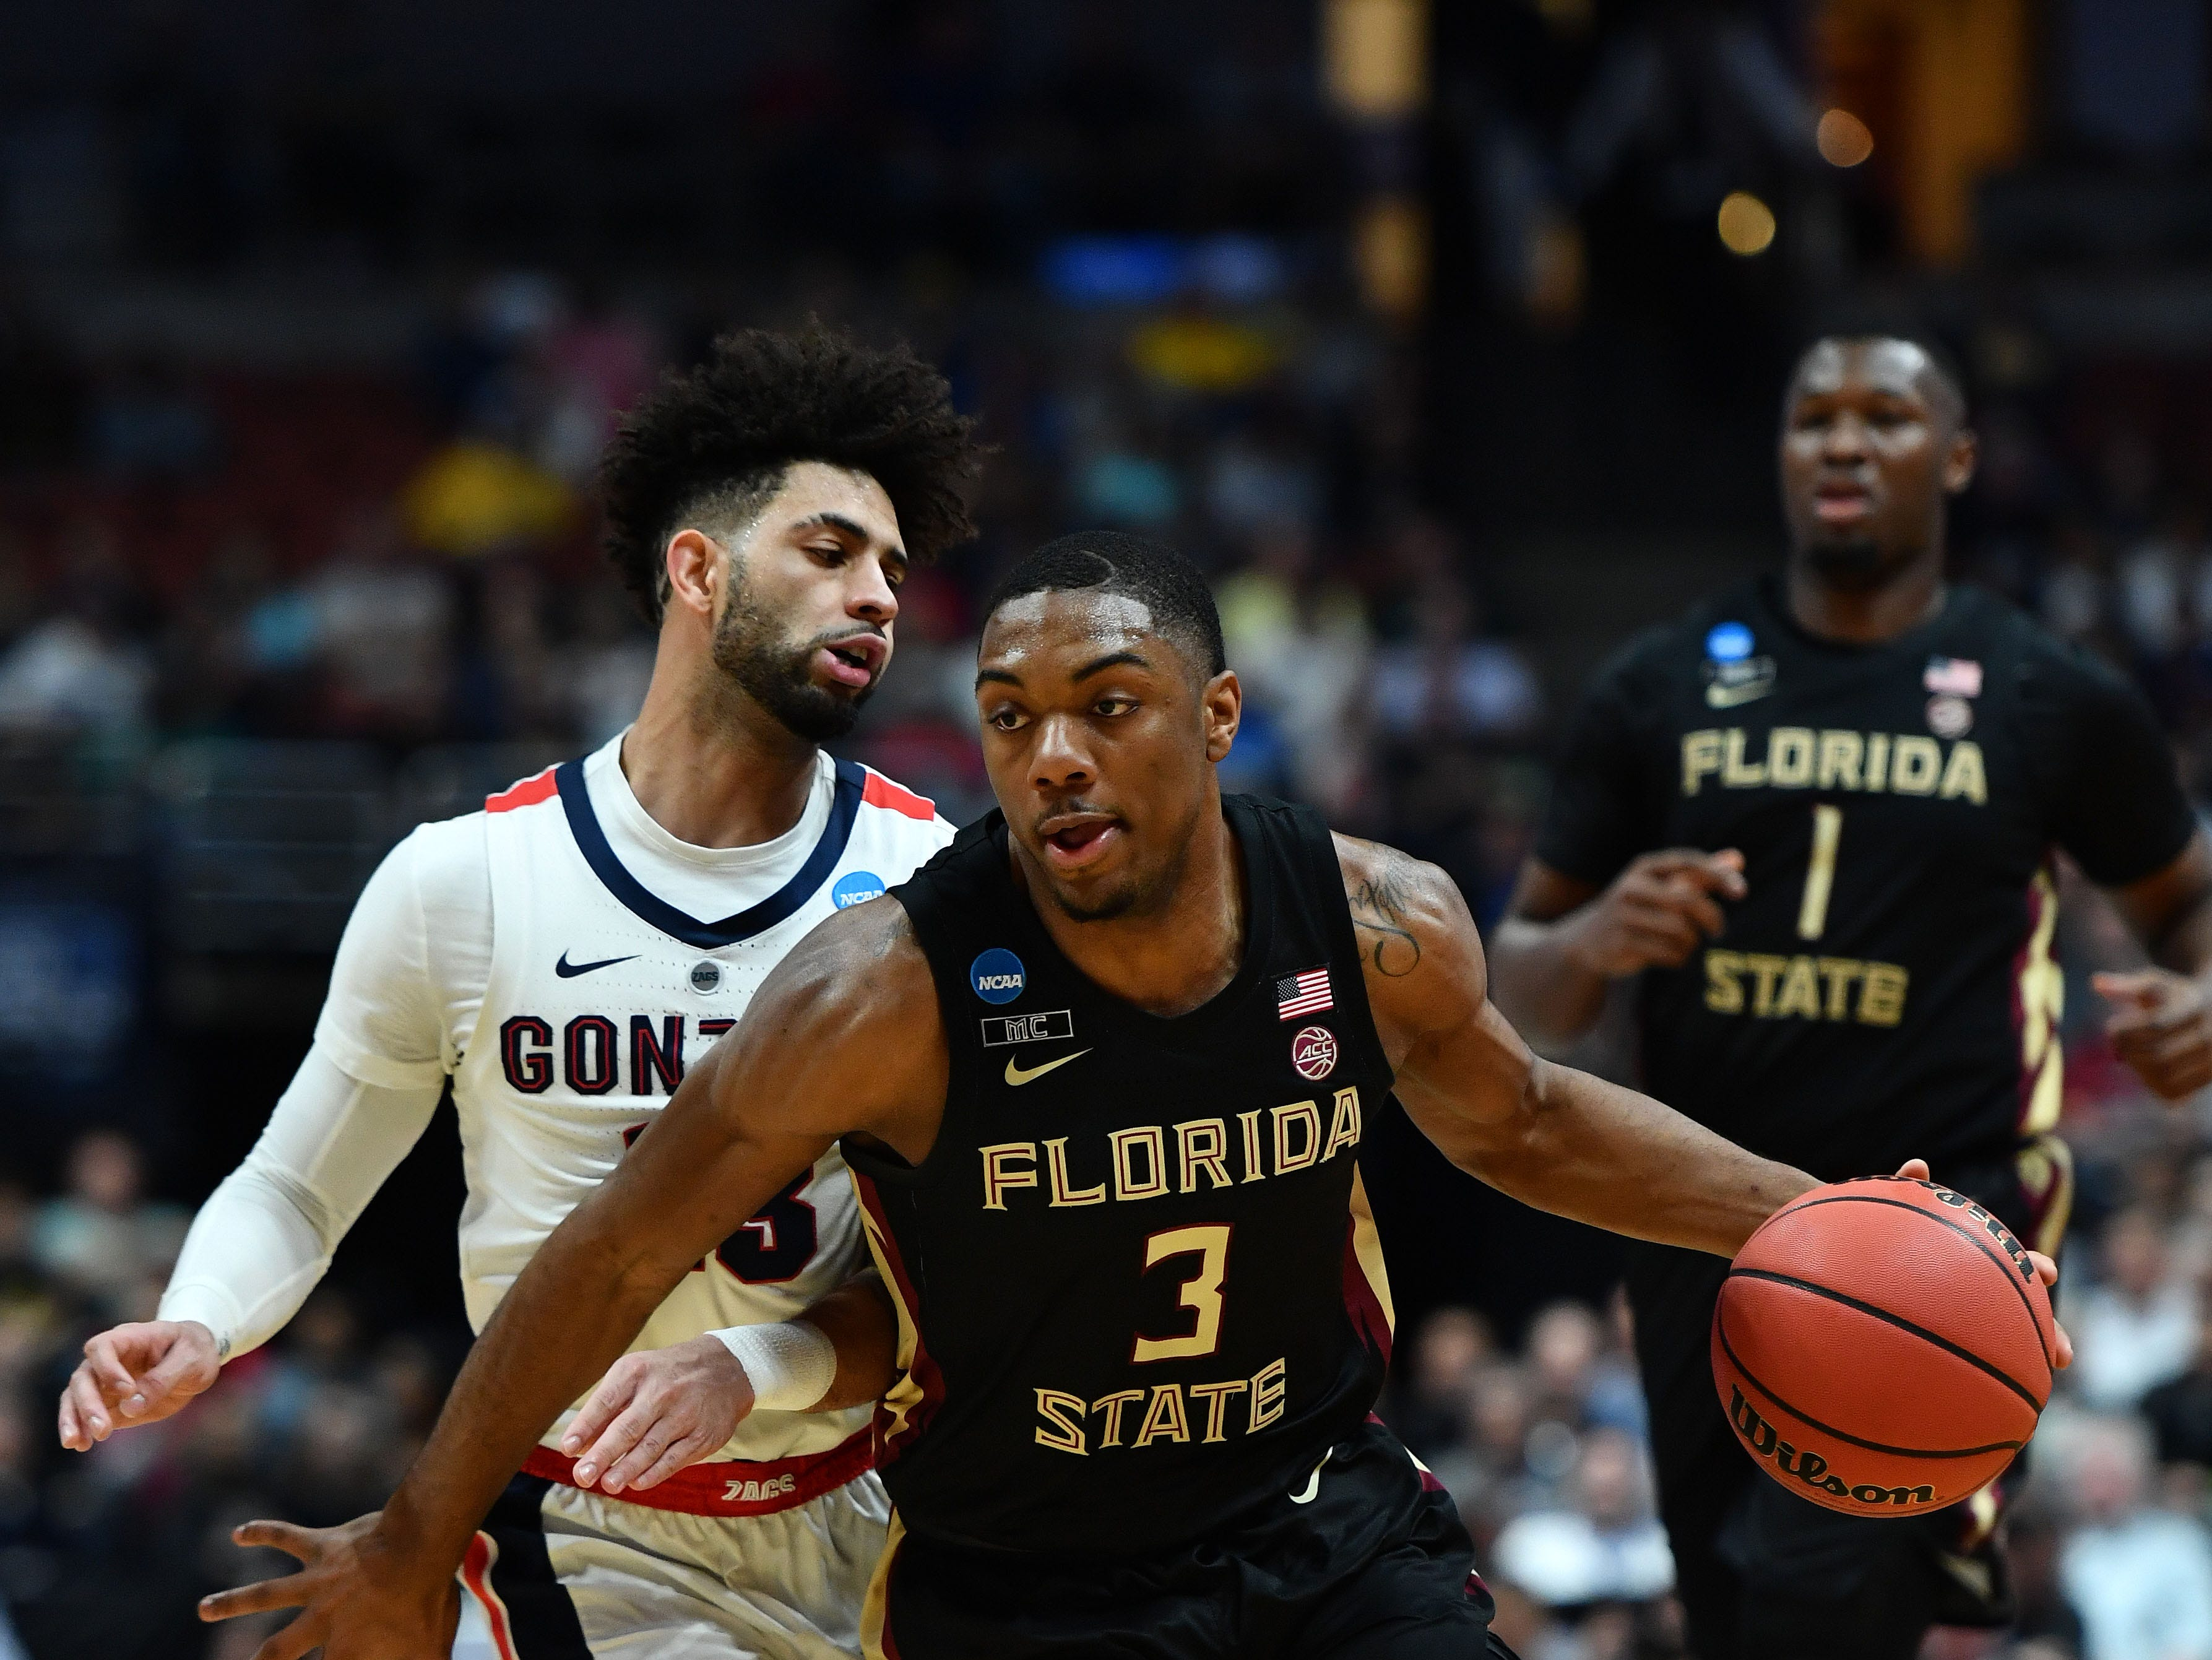 March 28, 2019; Anaheim, CA, USA; Florida State Seminoles guard Trent Forrest (3) moves the ball ahead of Gonzaga Bulldogs guard Josh Perkins (13) during the first half in the semifinals of the west regional of the 2019 NCAA Tournament at Honda Center. Mandatory Credit: Robert Hanashiro-USA TODAY Sports